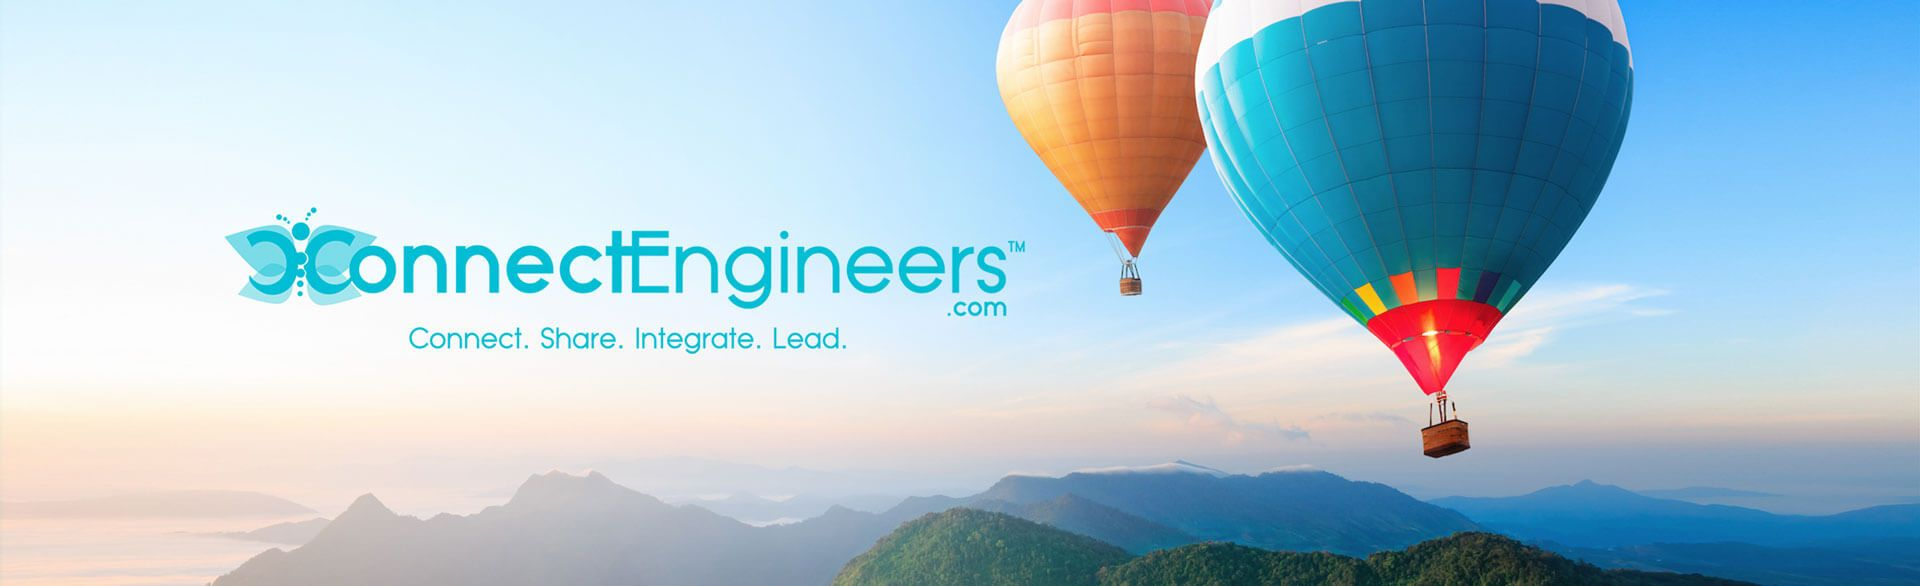 iConnectEngineers® Logo and mantra: Connect. Share. Integrate. Lead.